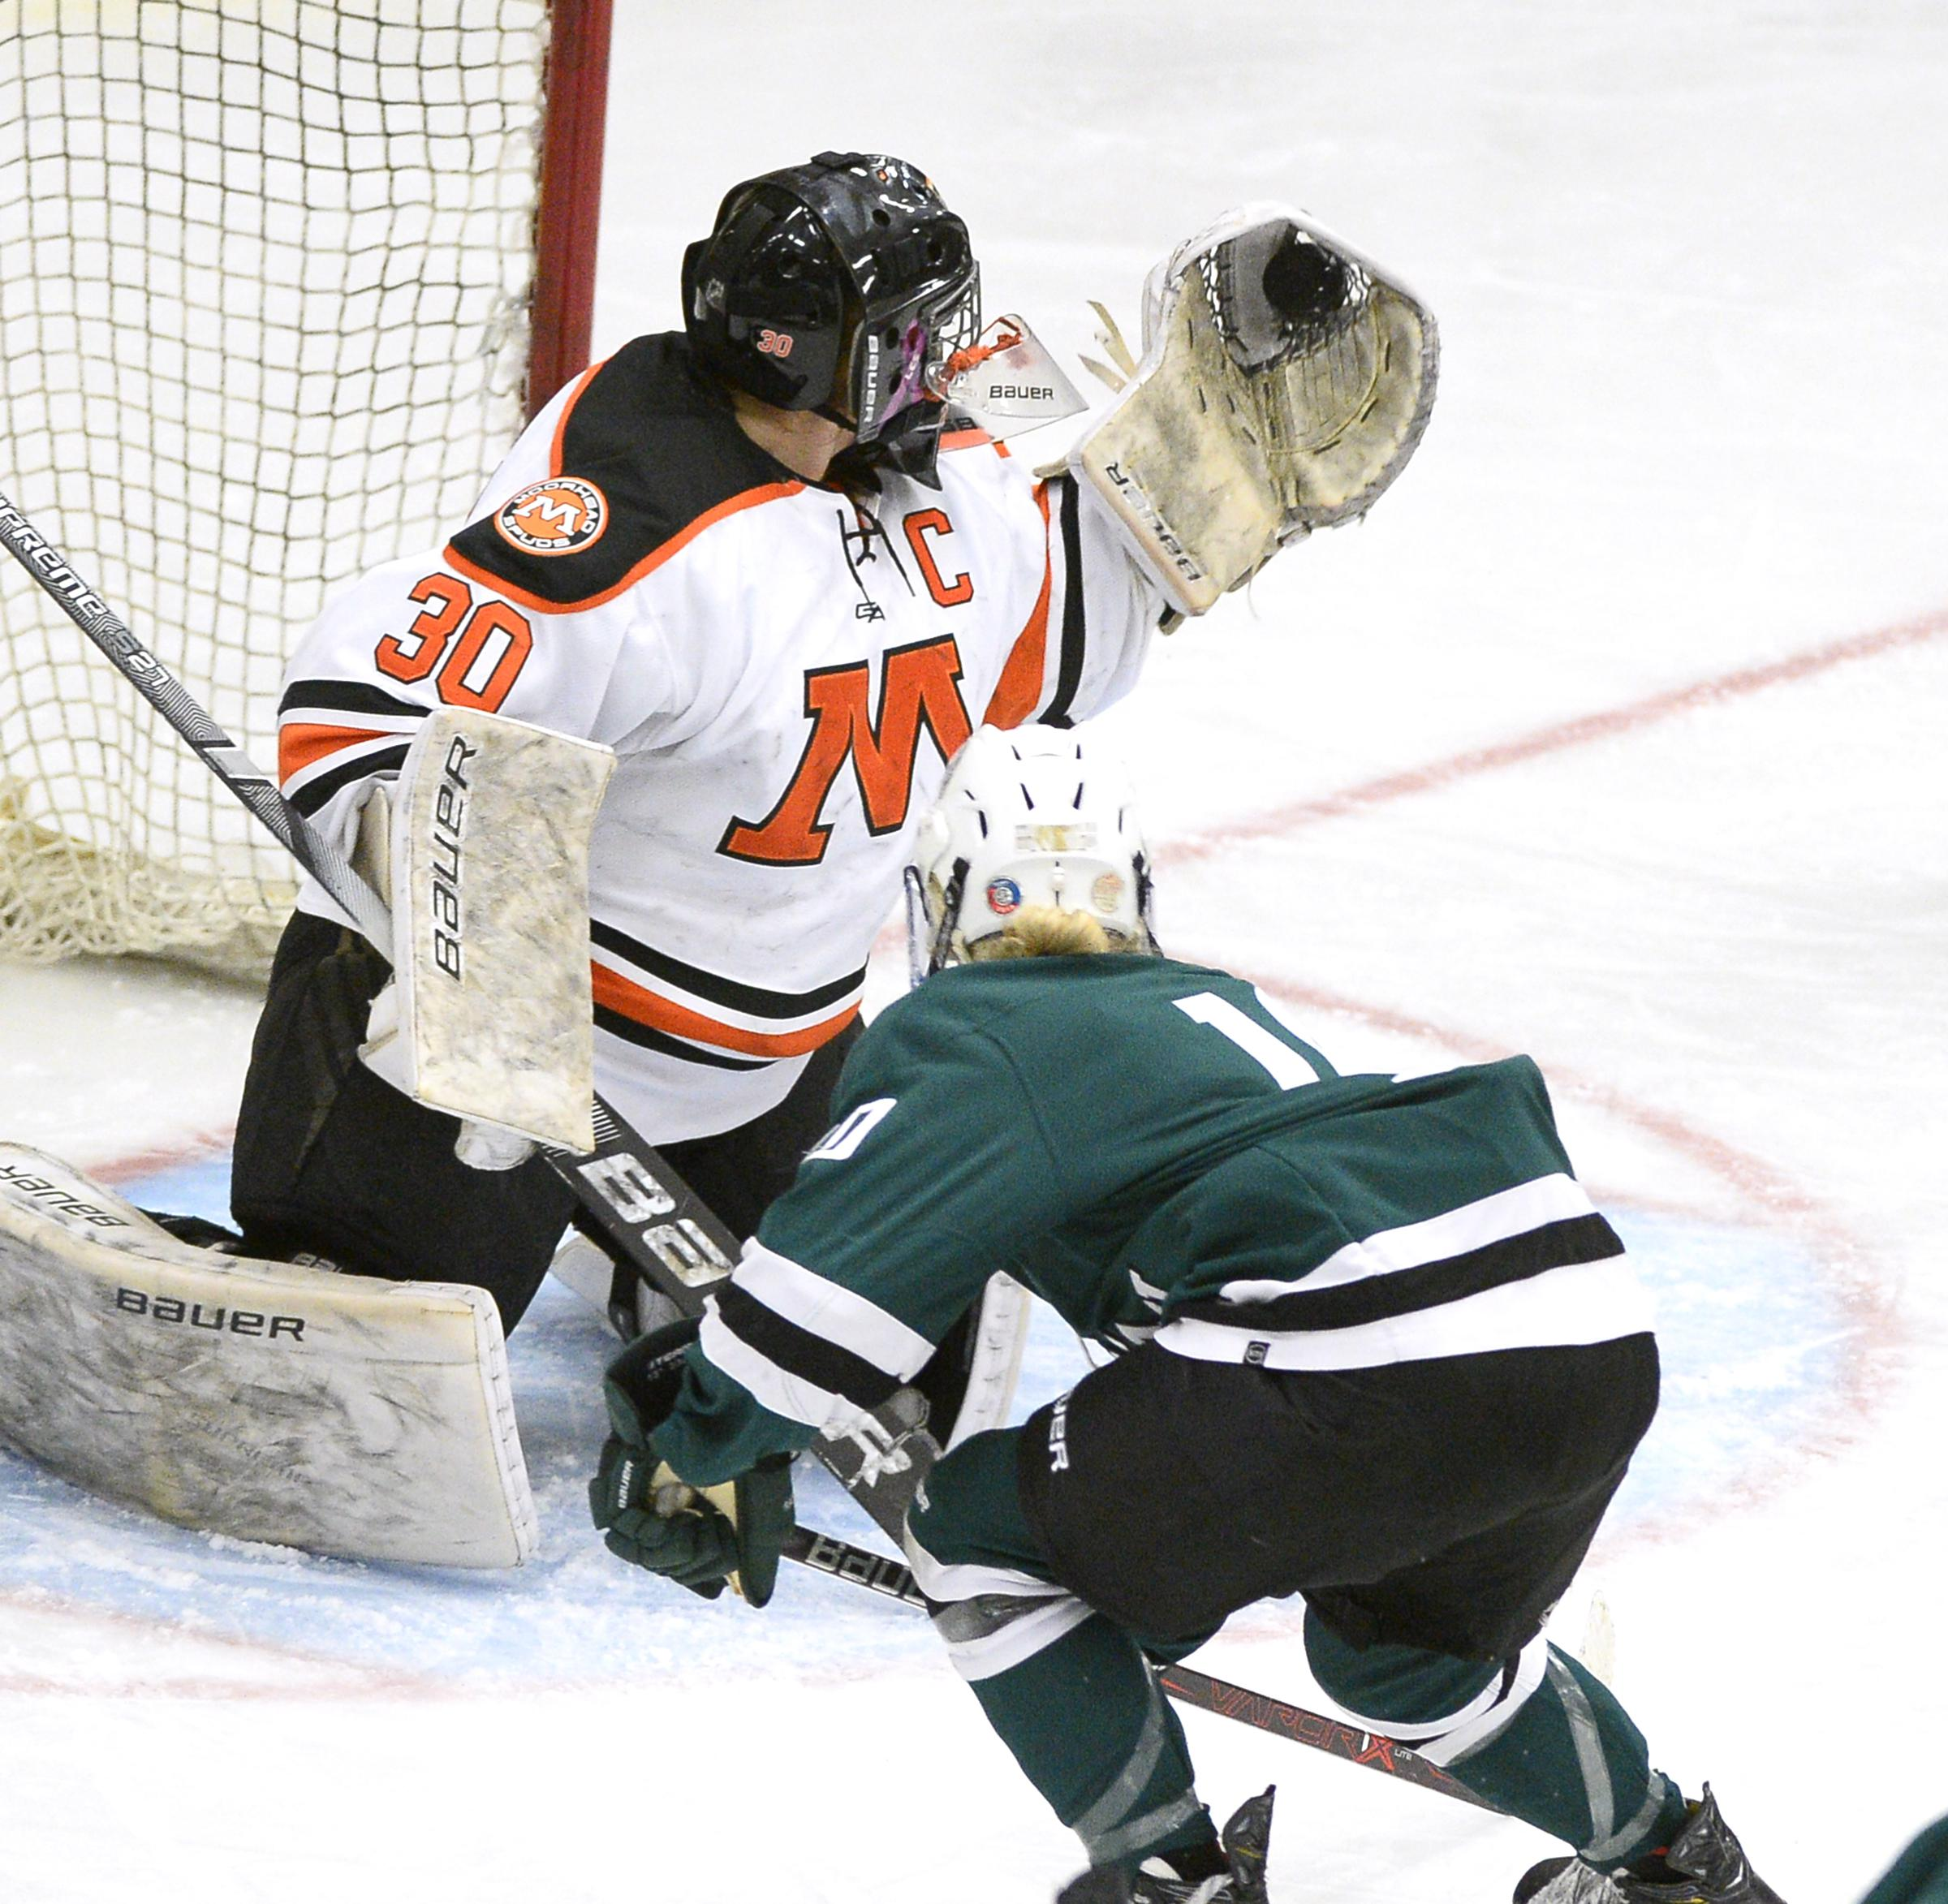 Moorhead goaltender Paige Schmidt (30) gloves a shot from Roseau's Anika Stoskopf. Schmidt made 53 saves on 59 shots for the Spuds. Moorhead lost at home 6-0 to Roseau. Photo by Tim Kolehmainen, SportsEngine